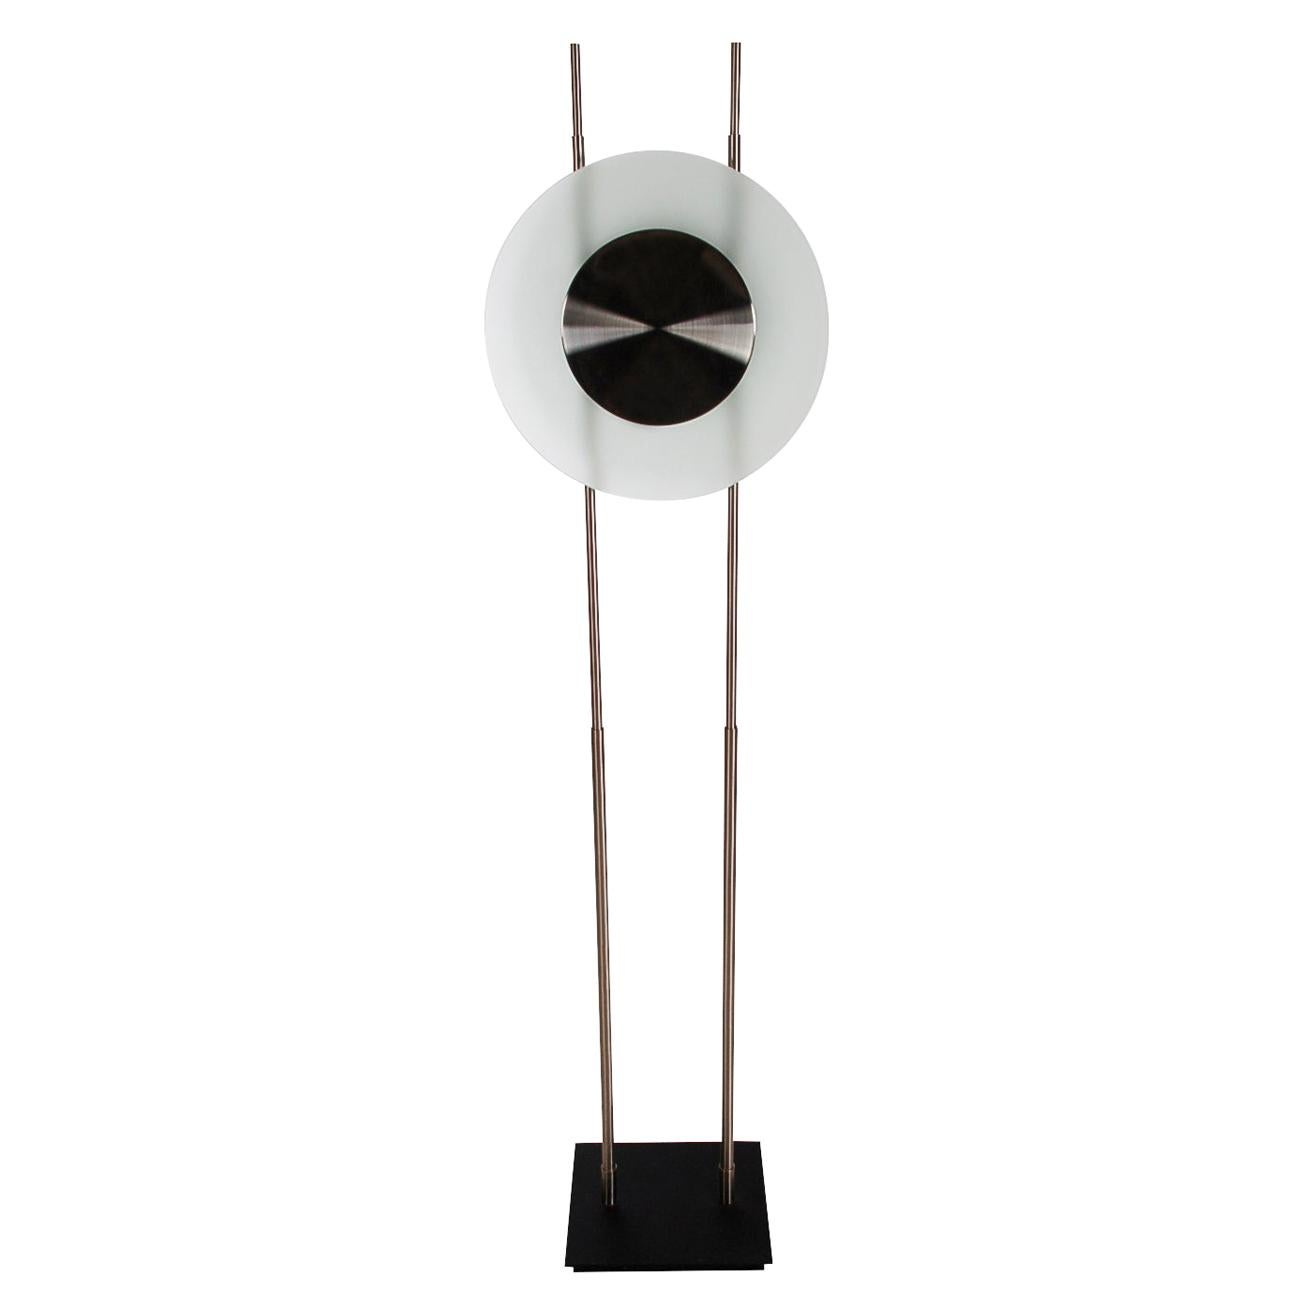 Midcentury Italian Postmodern Steel & Frosted Glass Floor Lamp after Sottsass